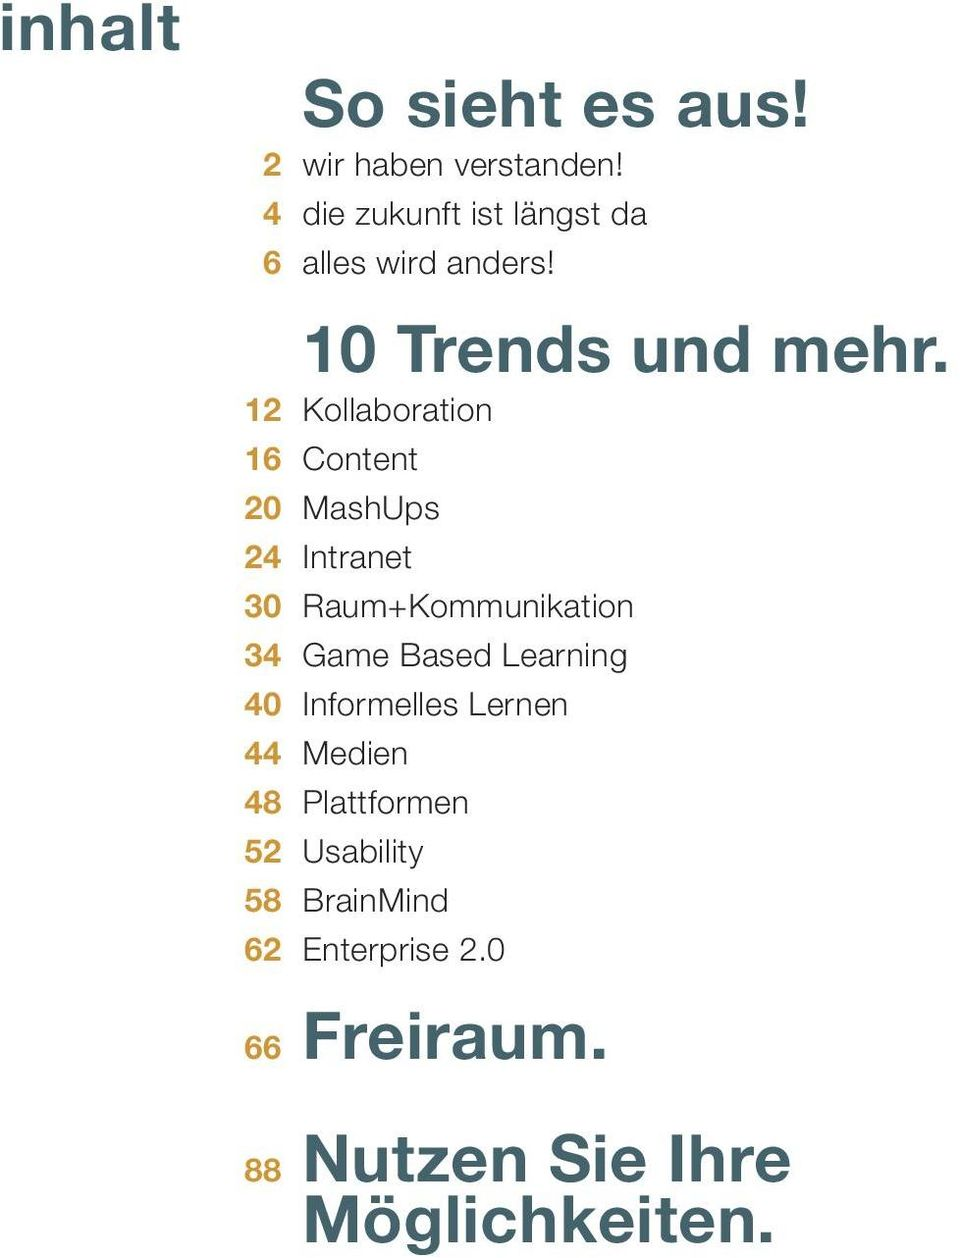 12 Kollaboration 16 Content 20 MashUps 24 Intranet 30 Raum+Kommunikation 34 Game Based